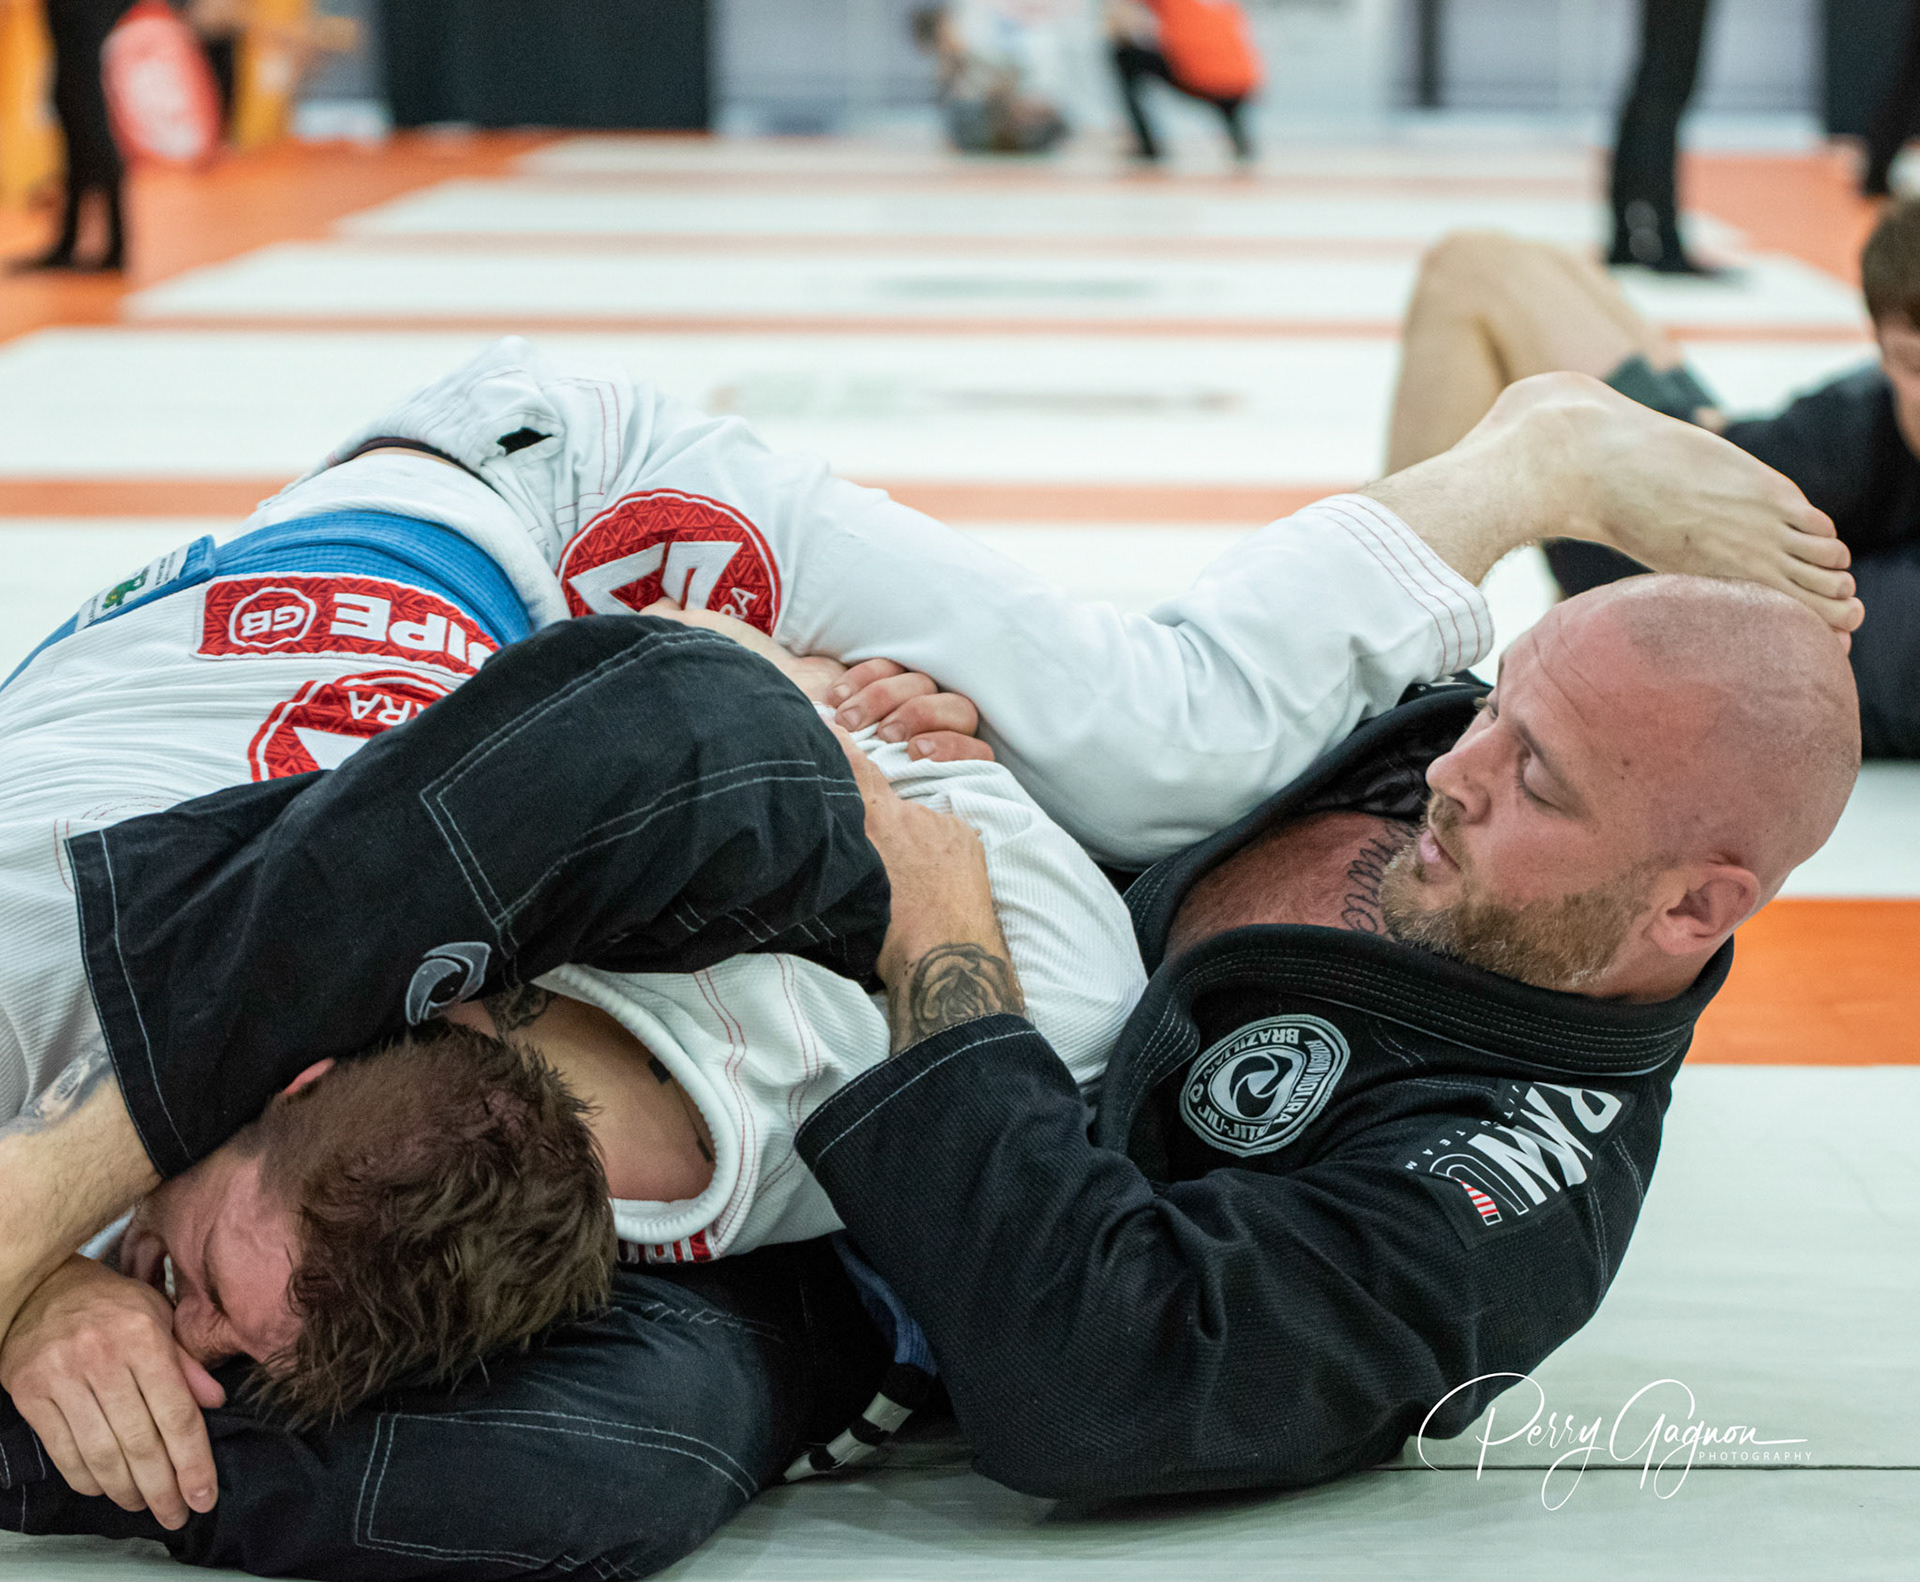 Perry Gagnon - Grappling Industries 2 29 19